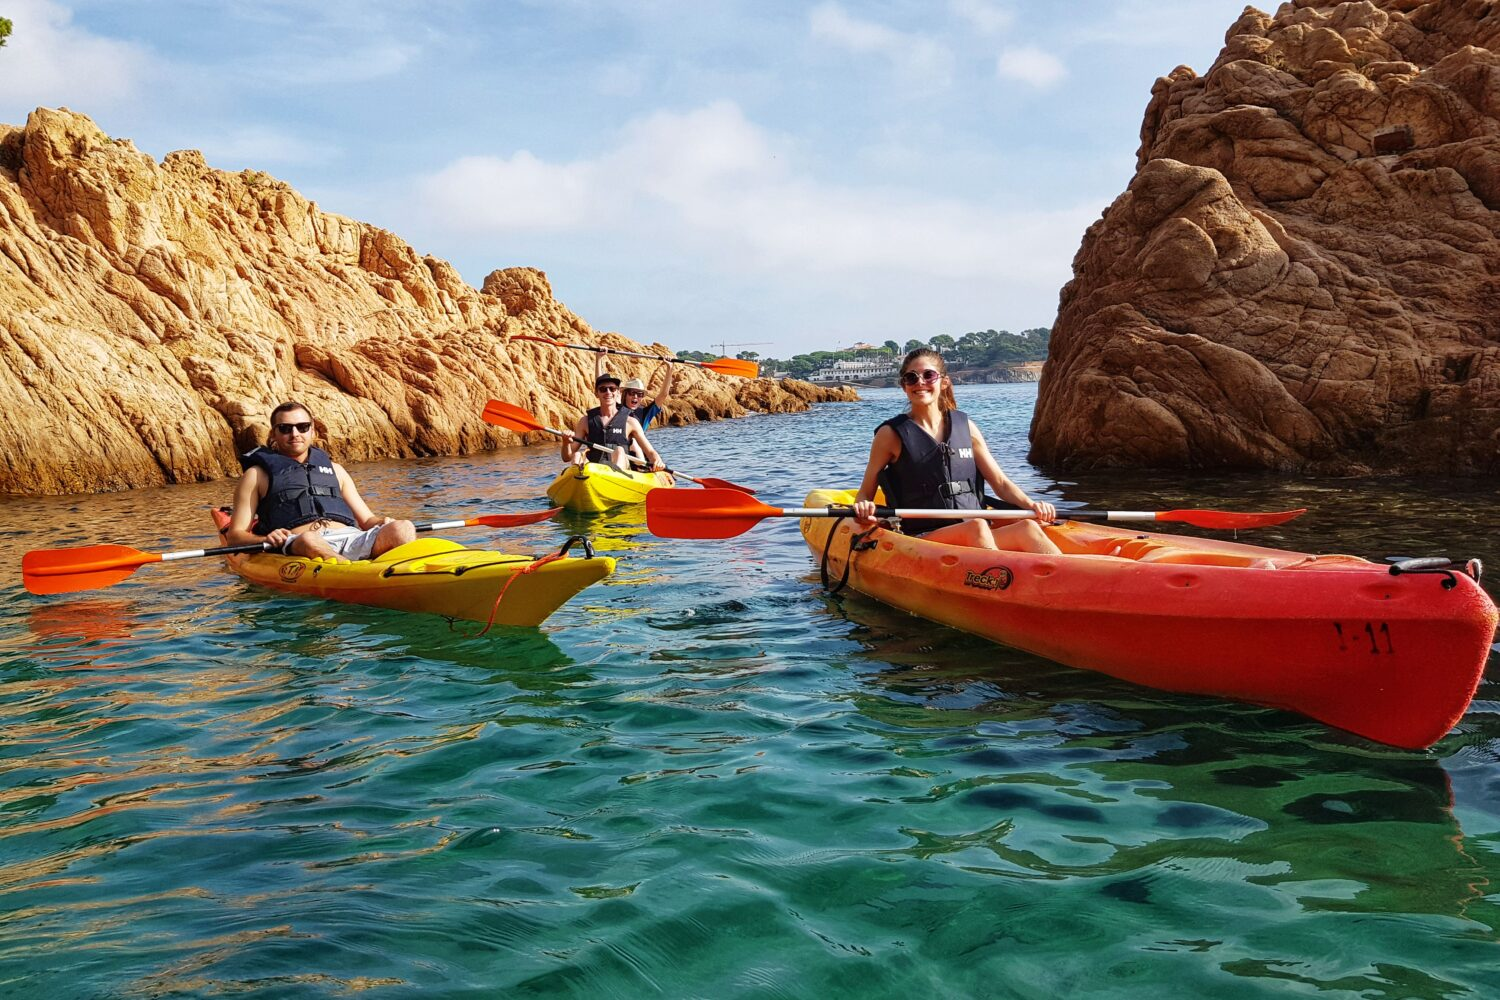 Kayaking in the bays and coves of the Costa Brava